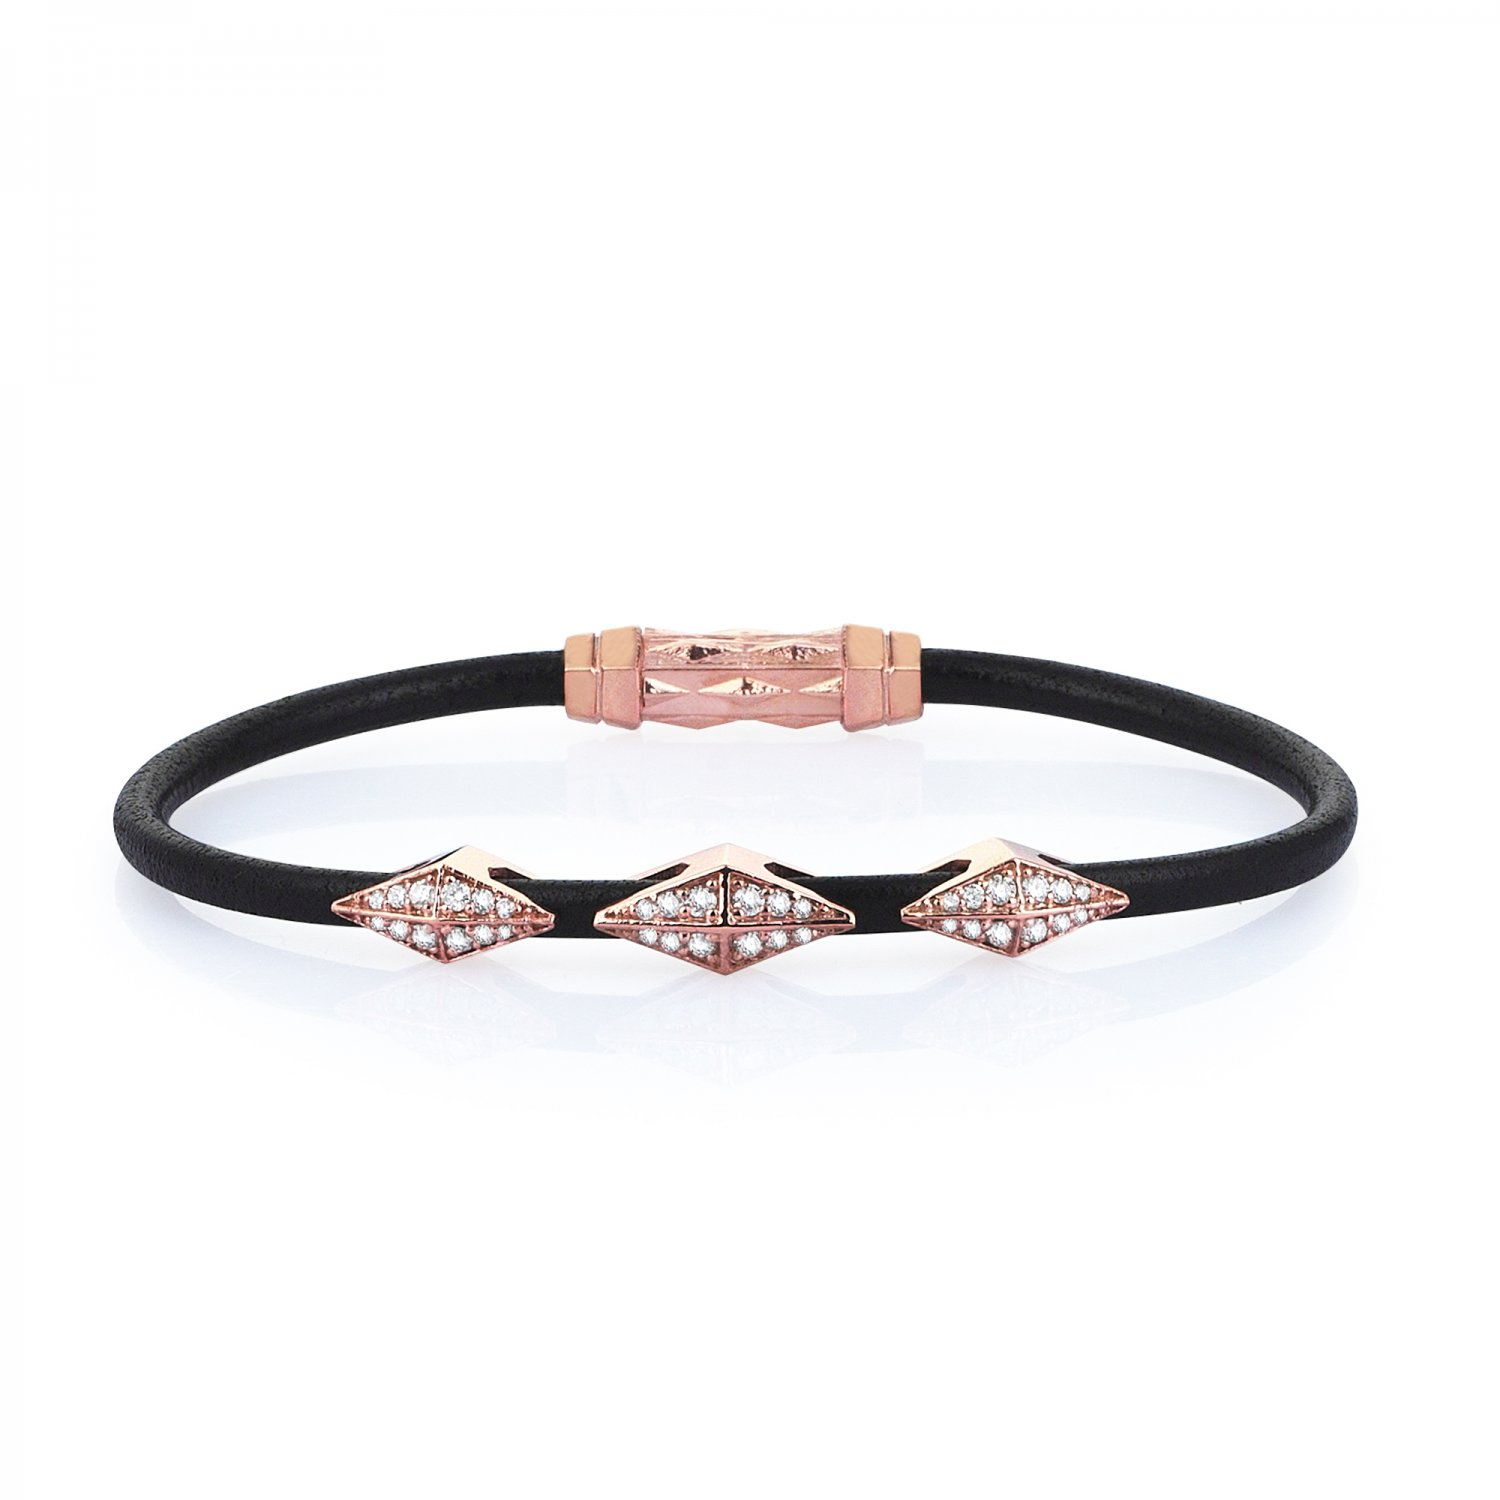 Single Lap Natural Black Leather Iconic Diamondback Silver Bracelet in Rose with Full Diamonds